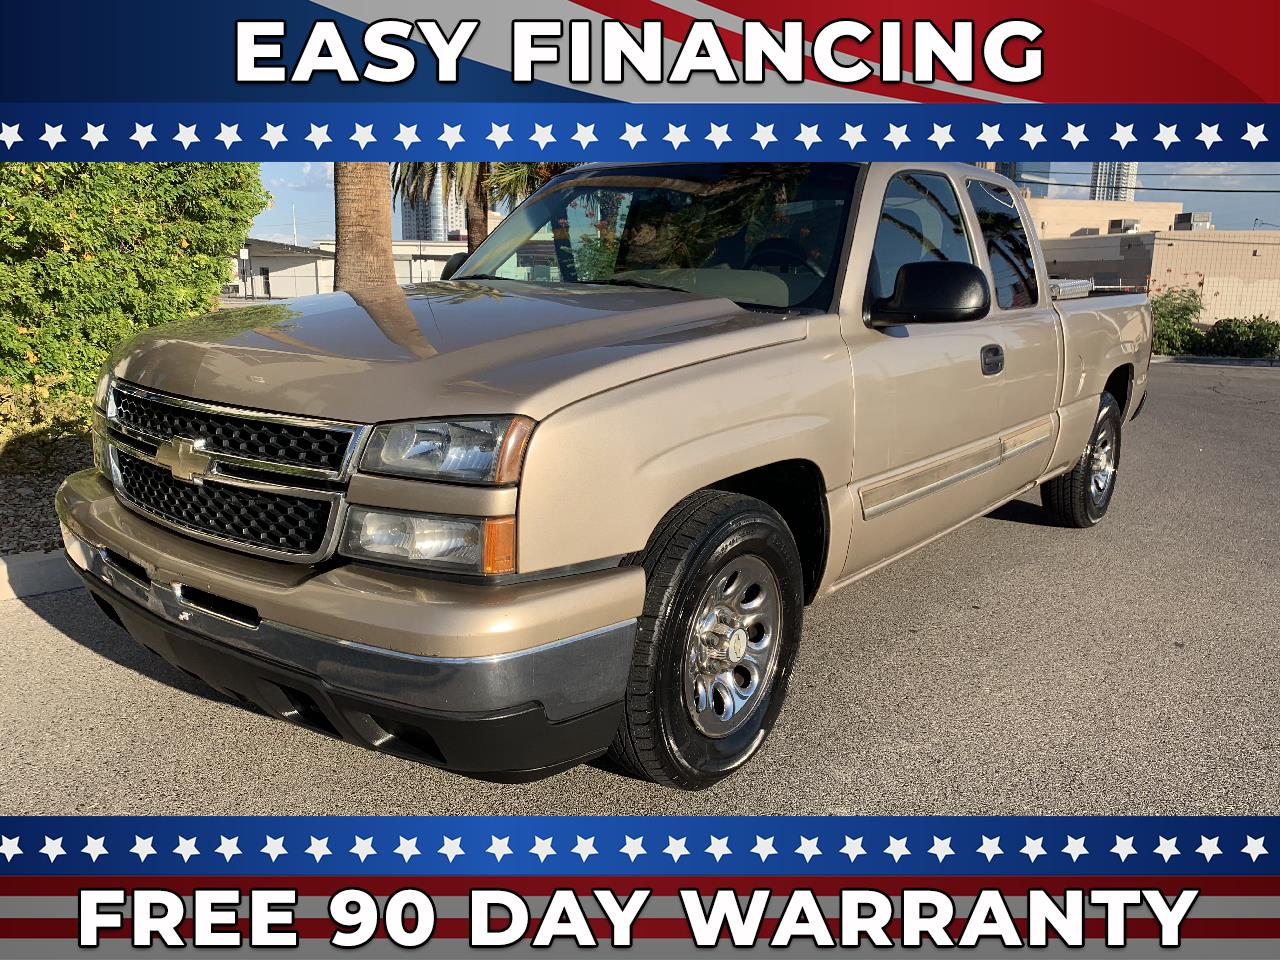 2006 Chevrolet Silverado 1500 LT3 Ext. Cab Short Bed 2WD